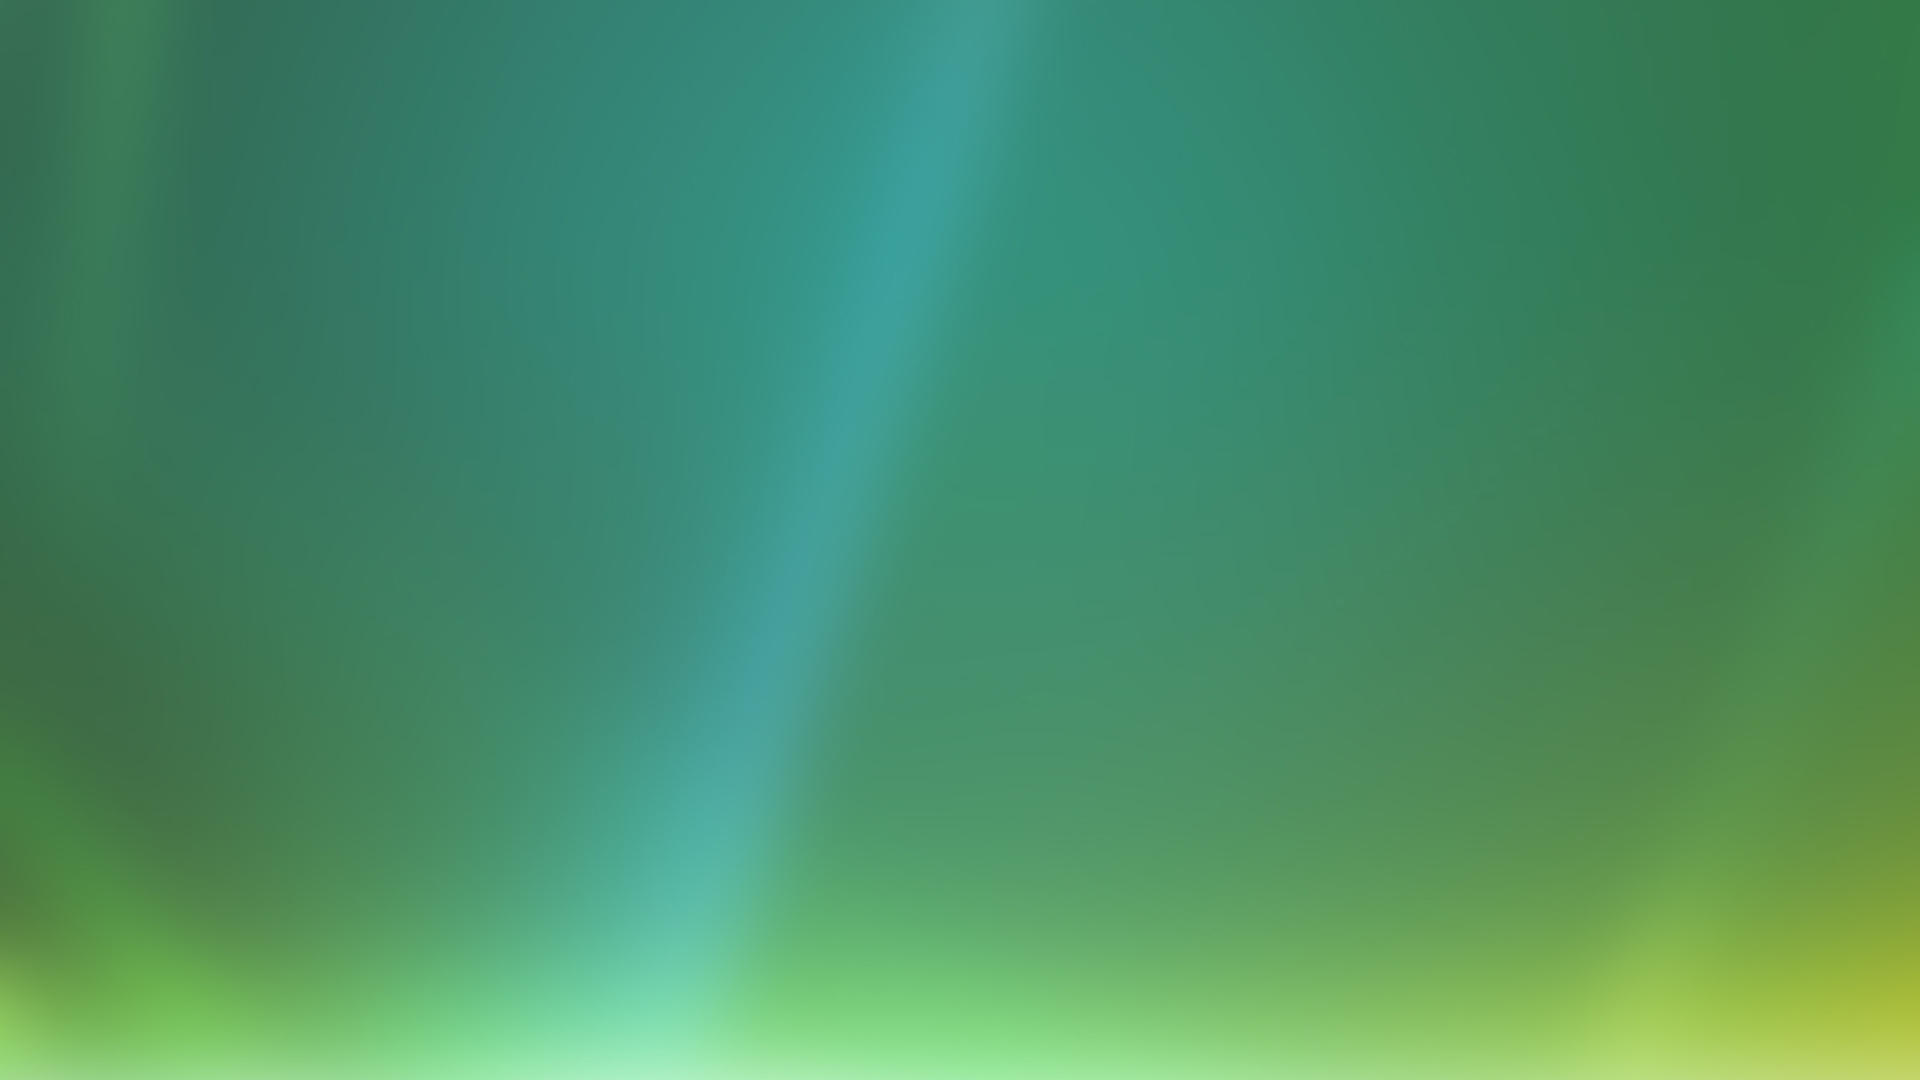 Windows 7 Glow Wallpaper